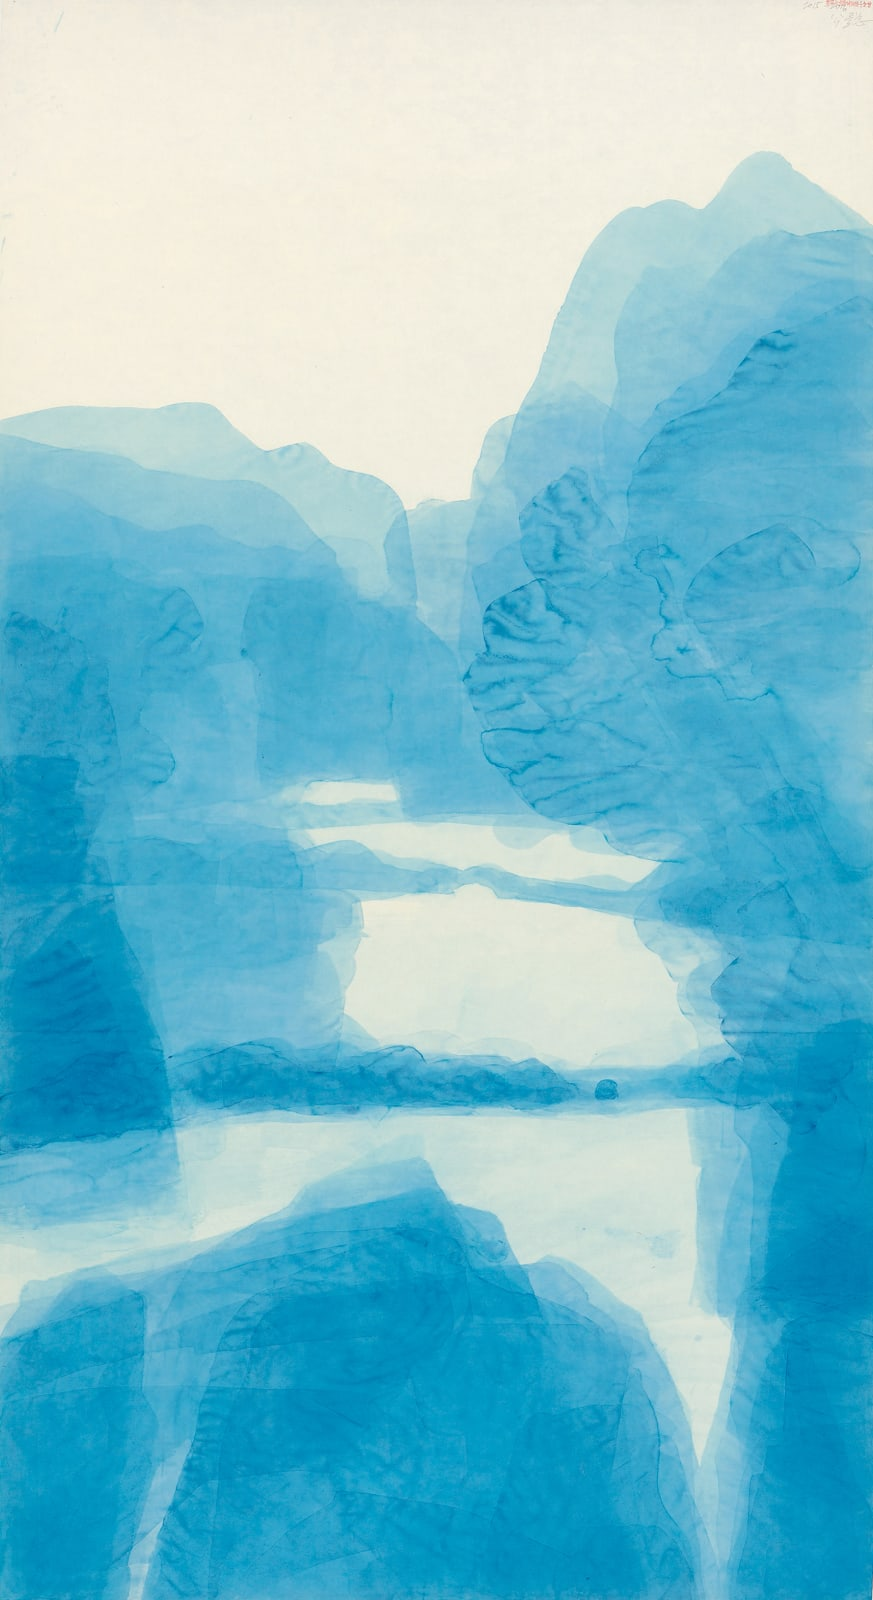 Wang Gongyi 王公懿, Winsor Blue - West Lake 温莎藍.西湖, 2015-2016